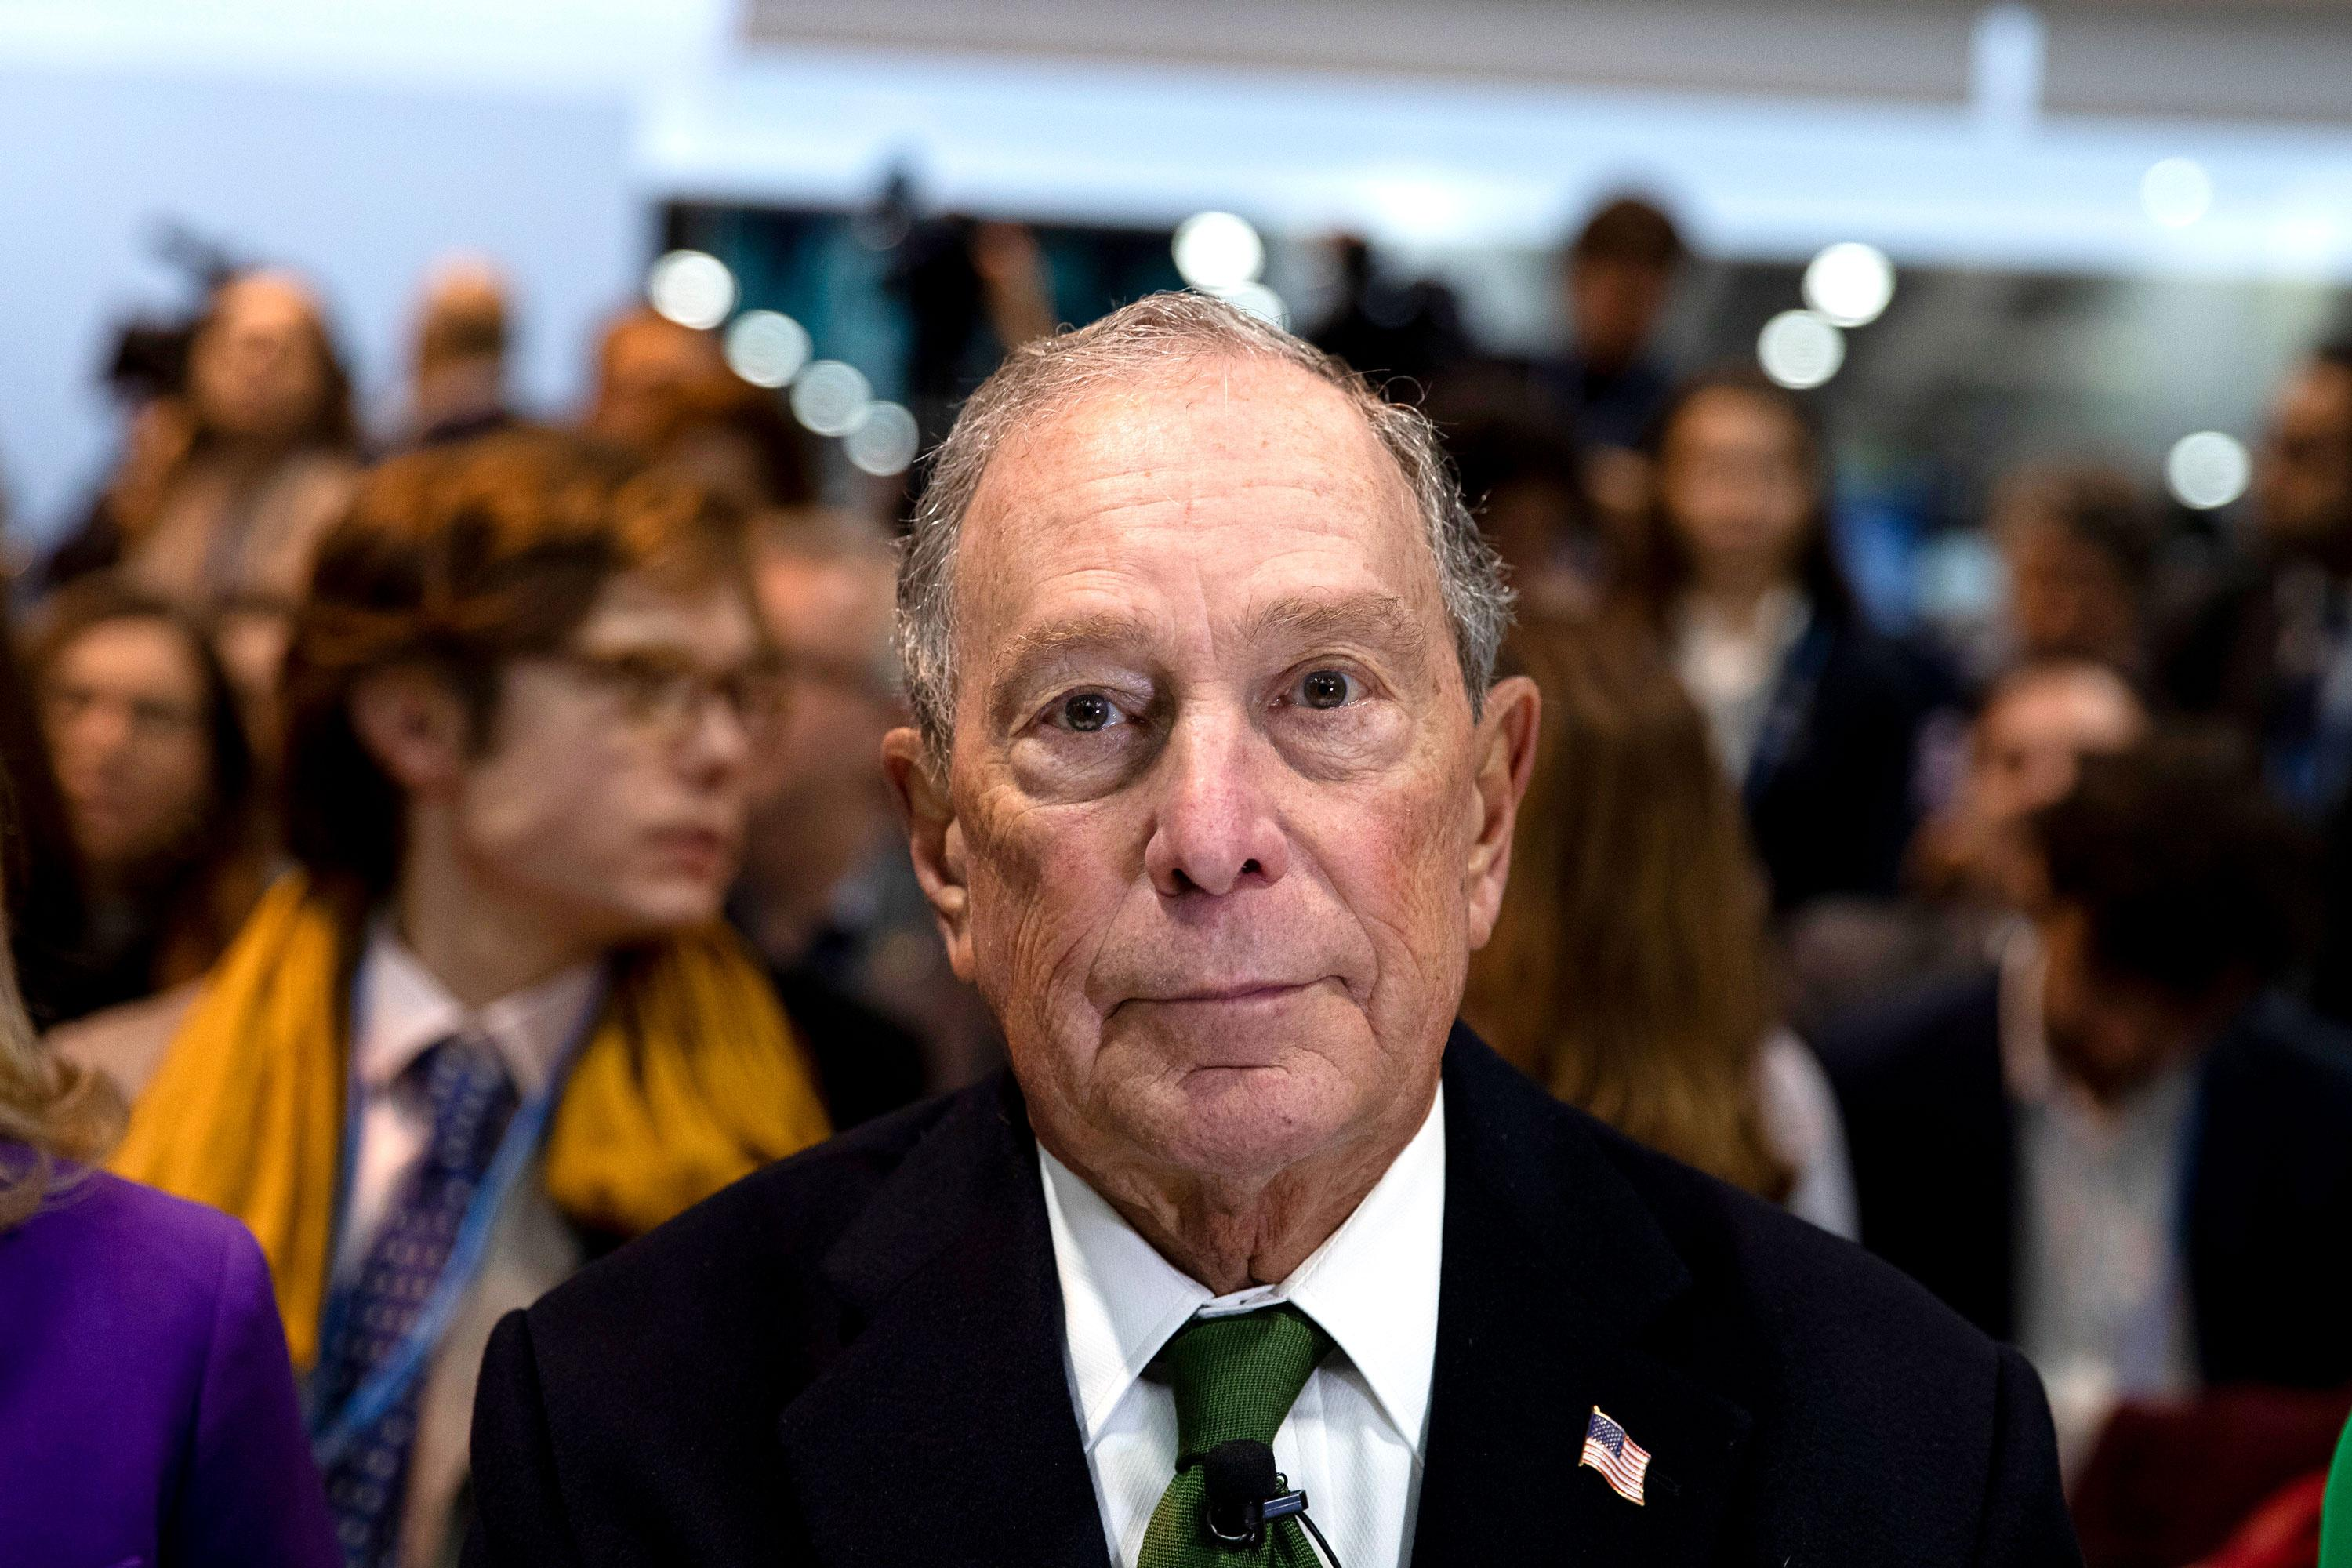 Man with the money: Democrats cry foul as Bloomberg splashes the cash